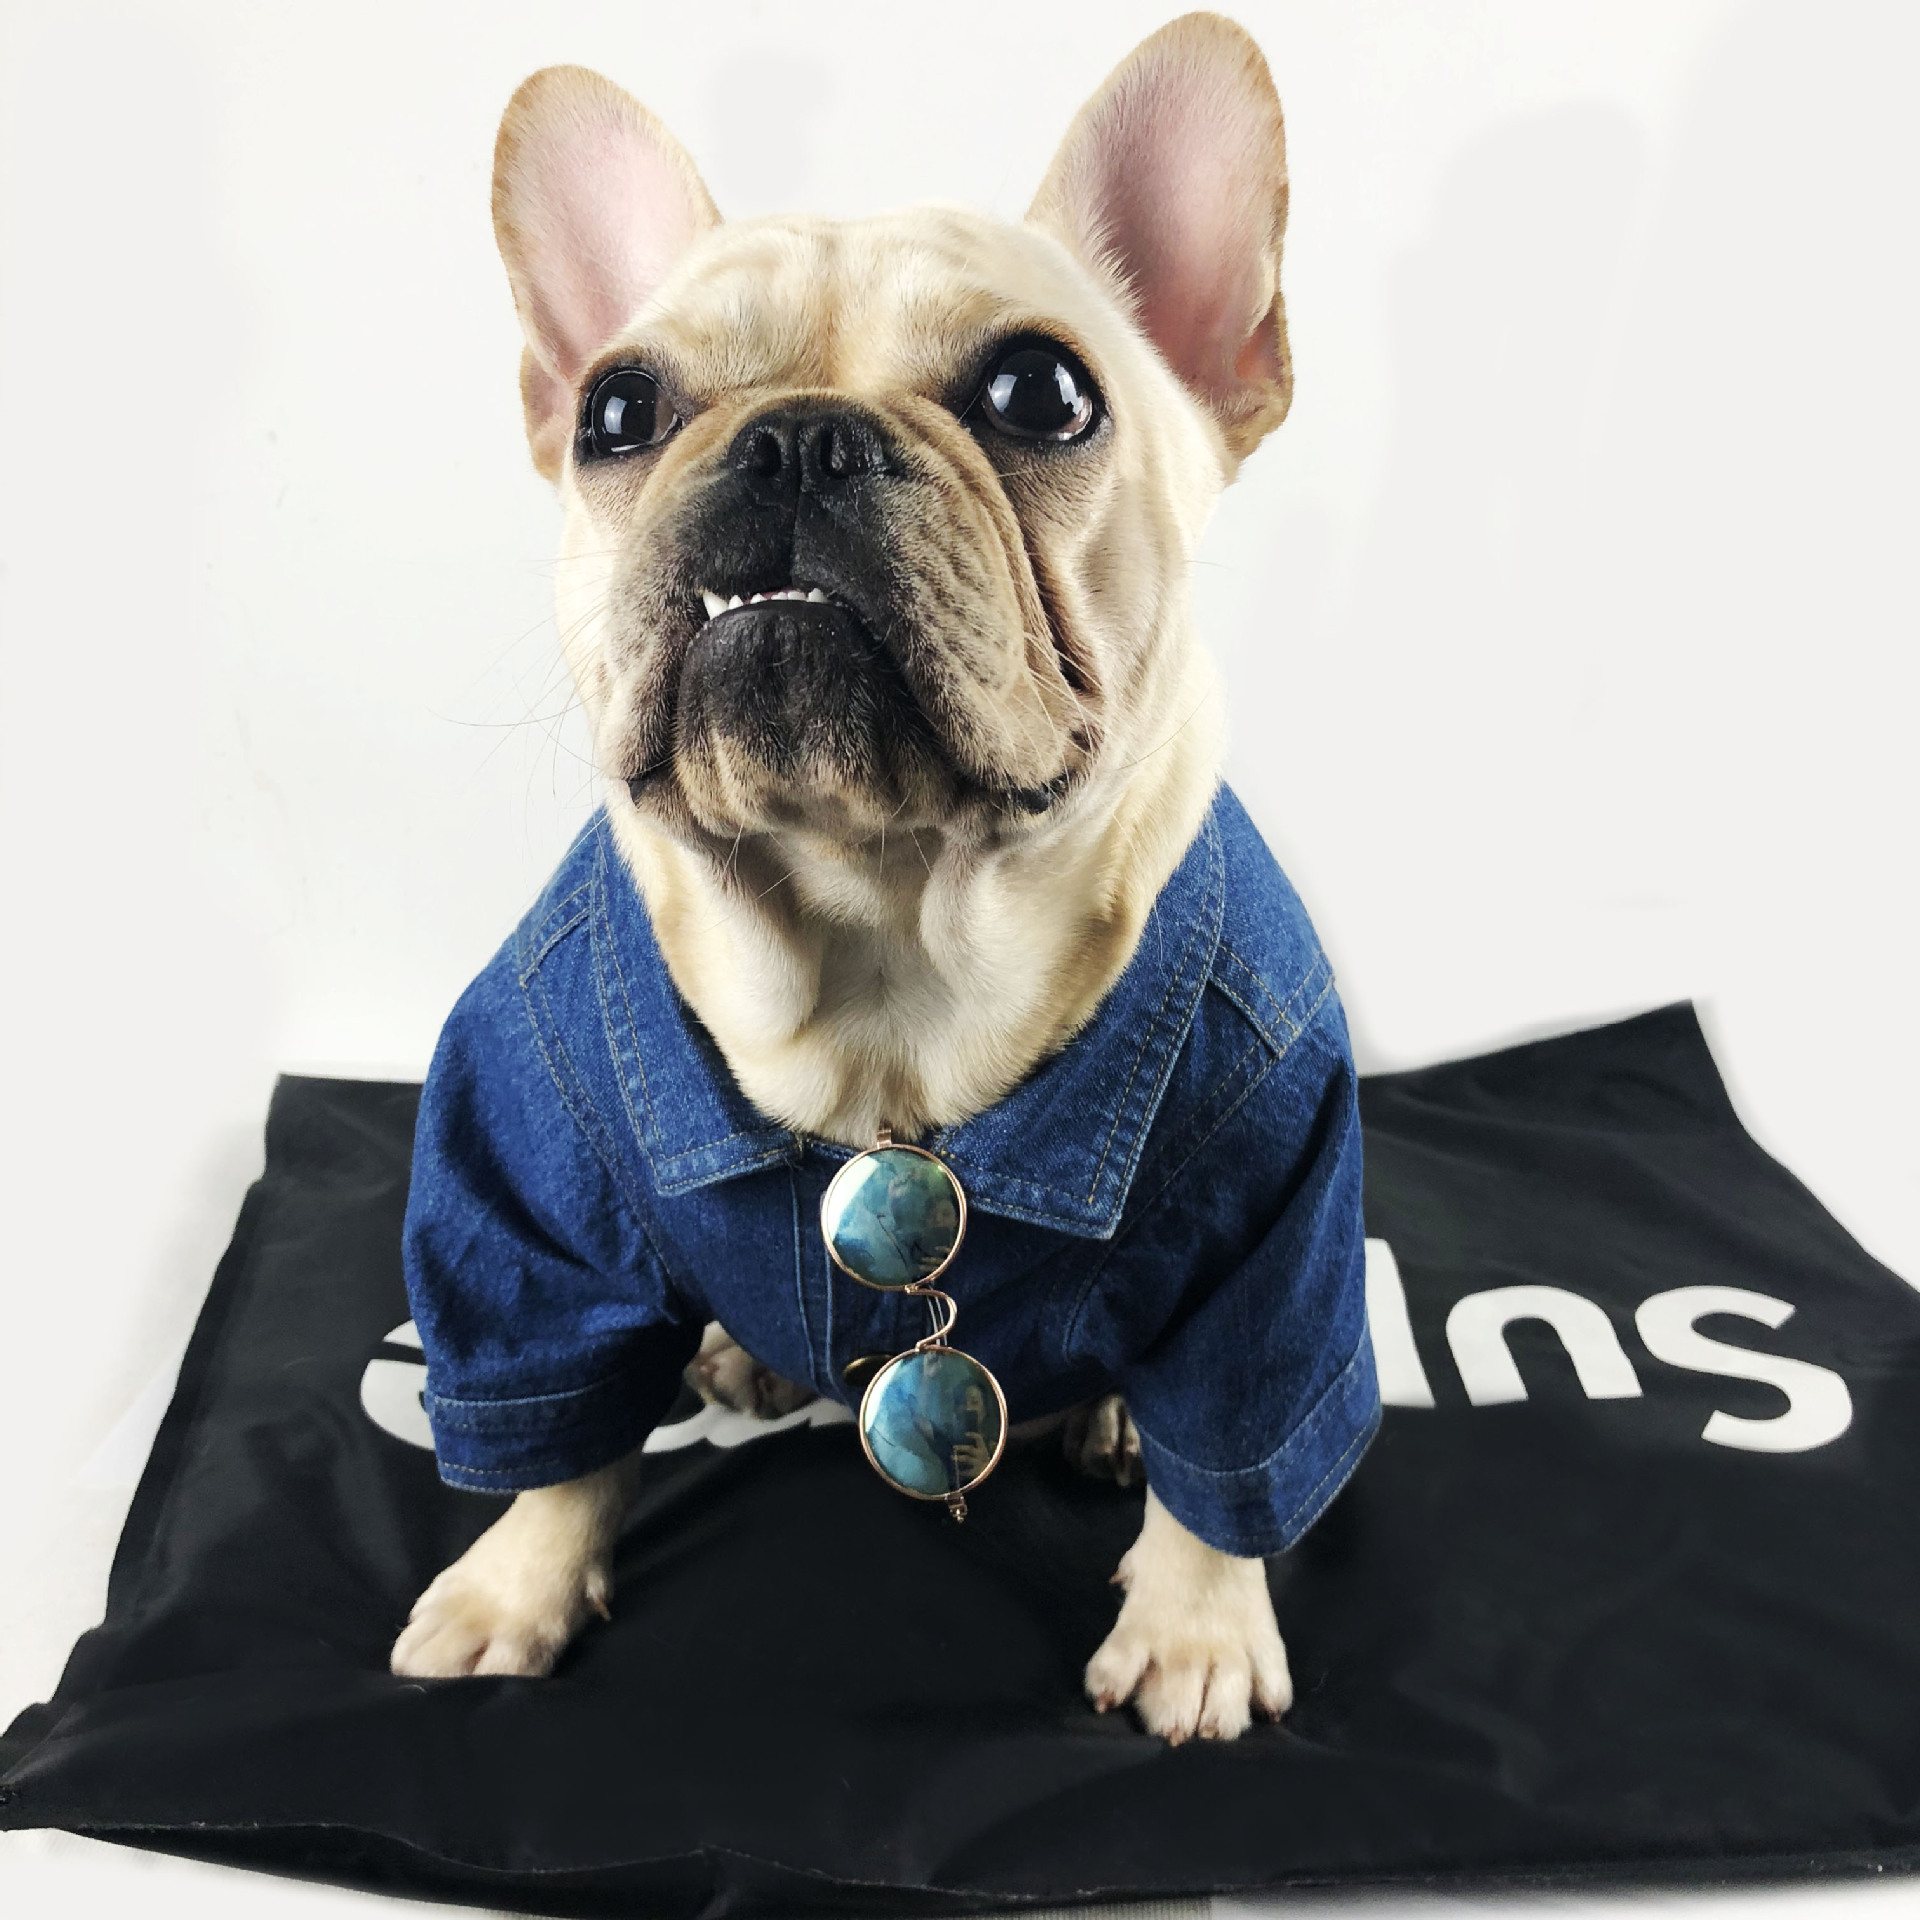 Fashion Dog Denim Jacket For Small Dogs French Bulldog Jeans Coat Printed Clothes For Chihuahua Pug Puppy Pet Luxury Clothes Dog Coats Jackets Aliexpress